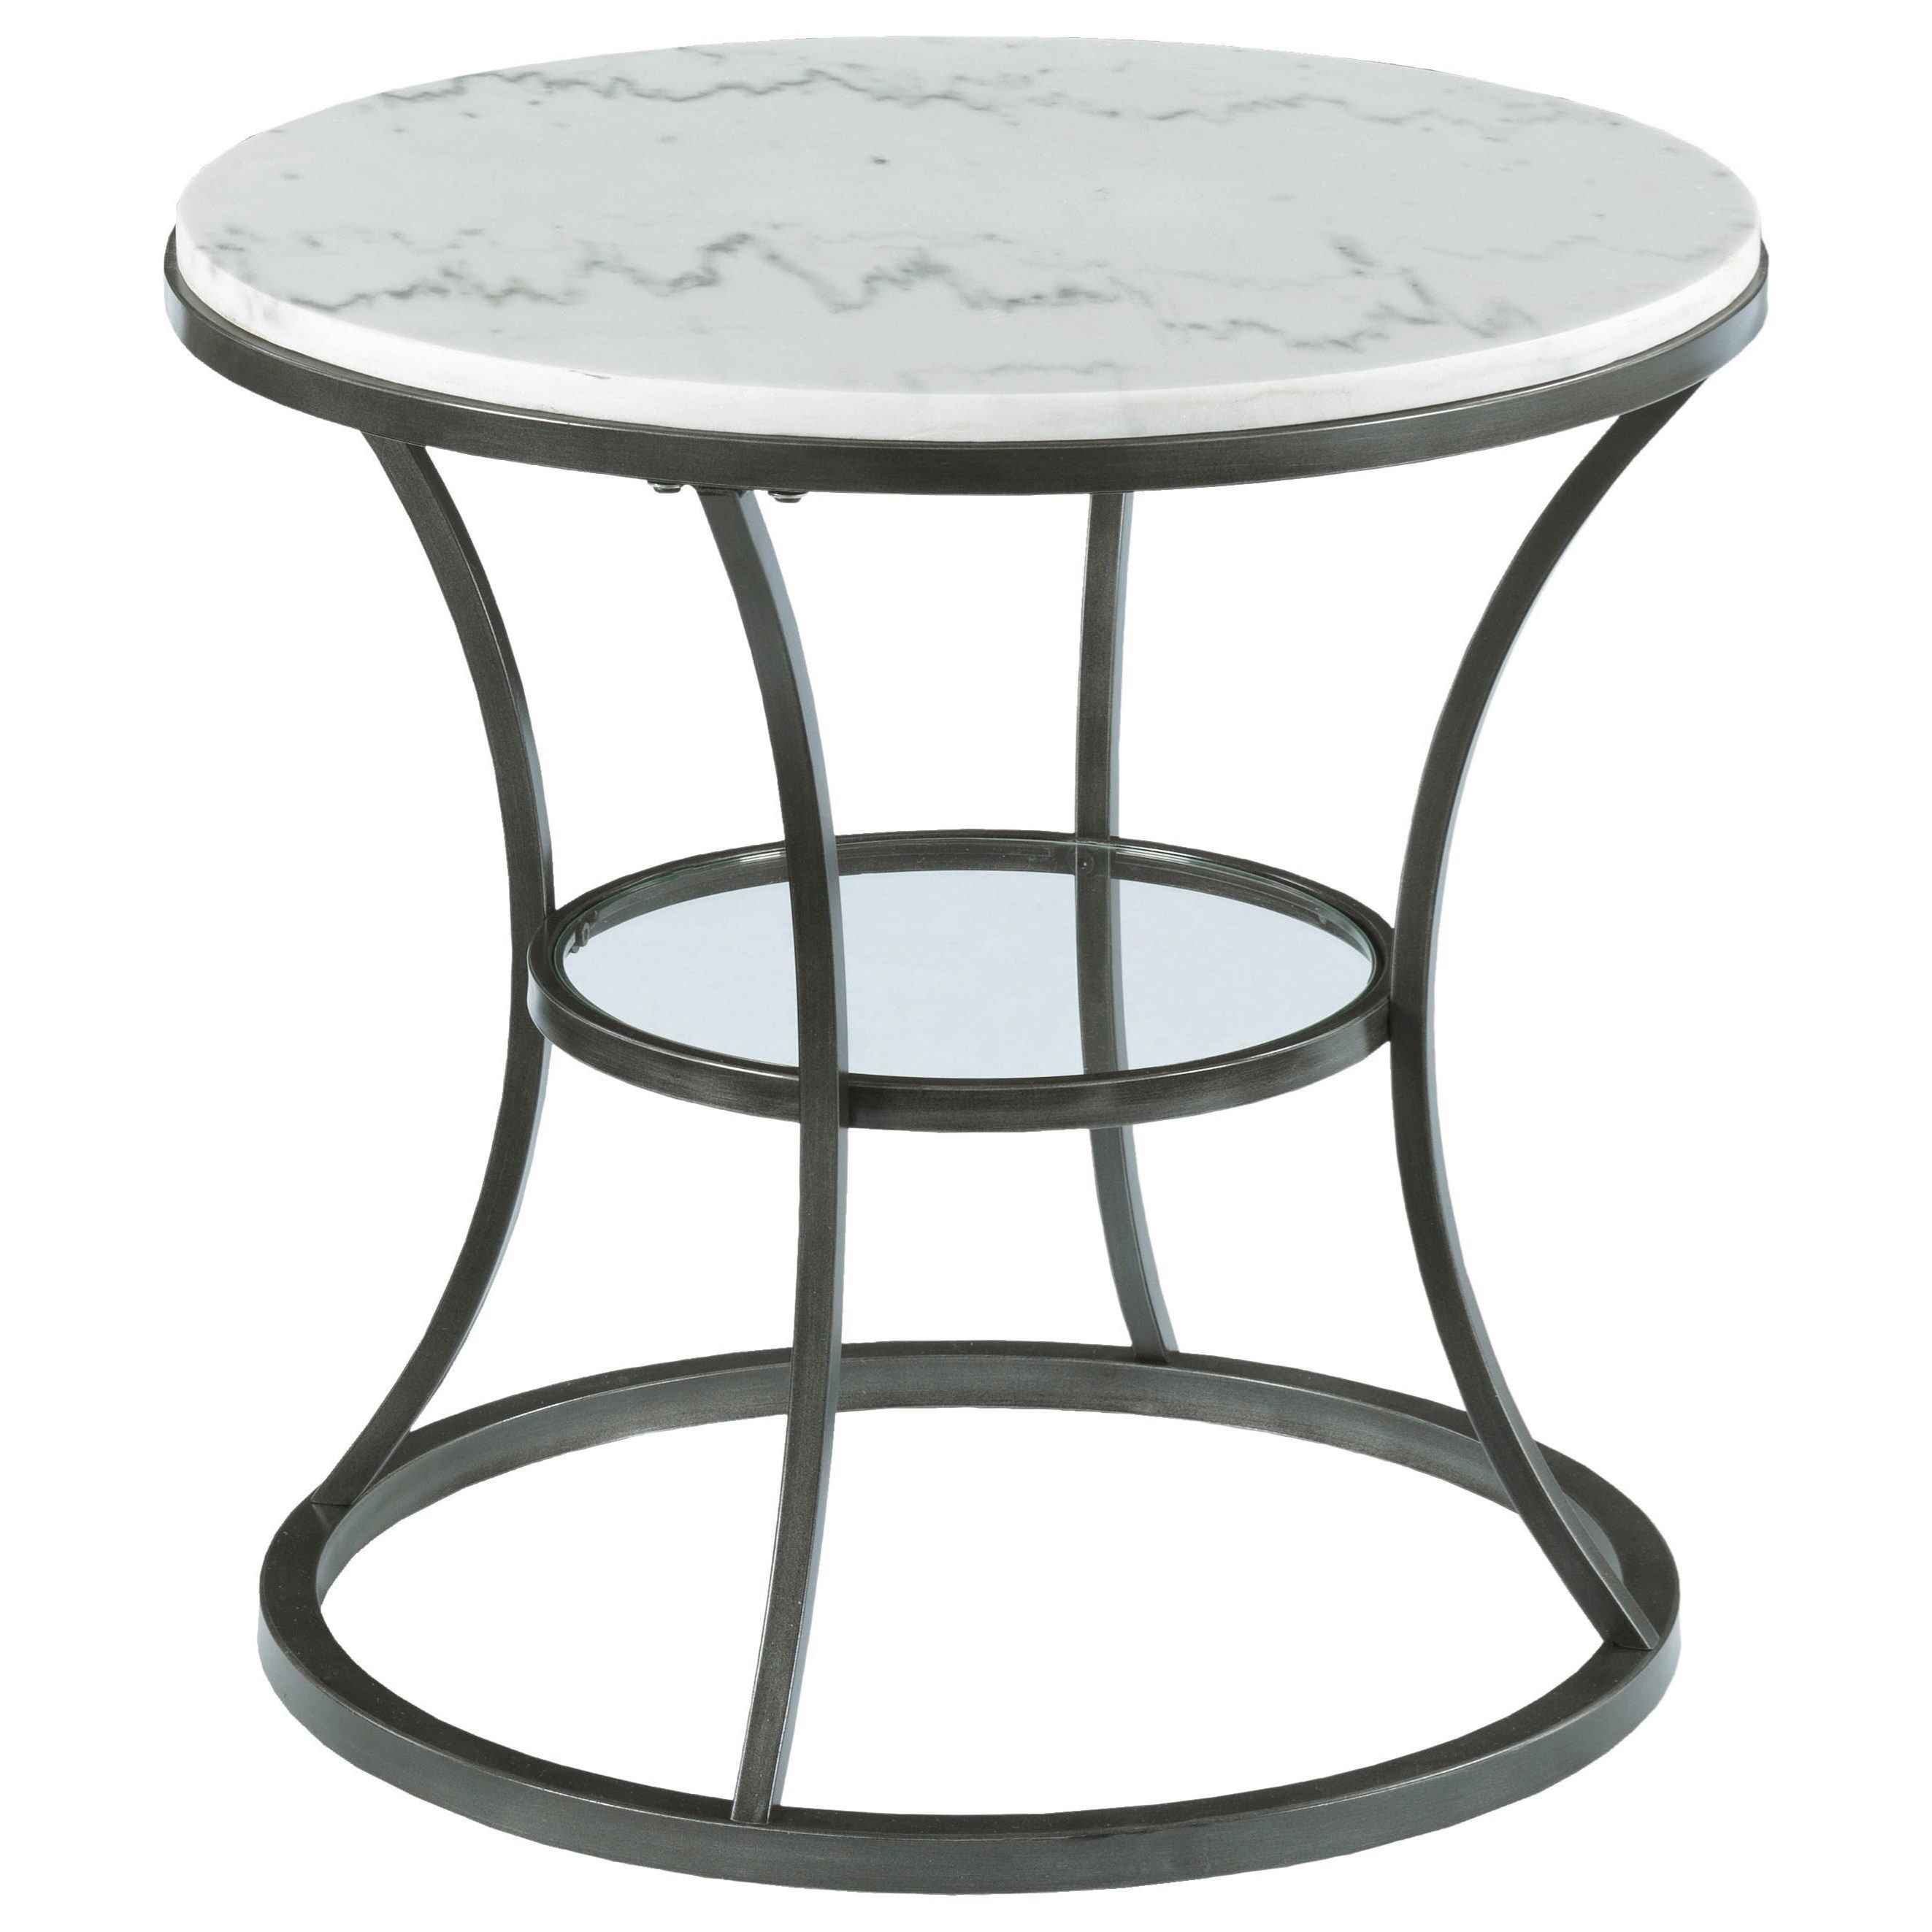 hammary impact round end table with marble top and glass copper black accent set kids bedside ikea kitchen storage boxes legs carpet edge trim country tables target media cabinet